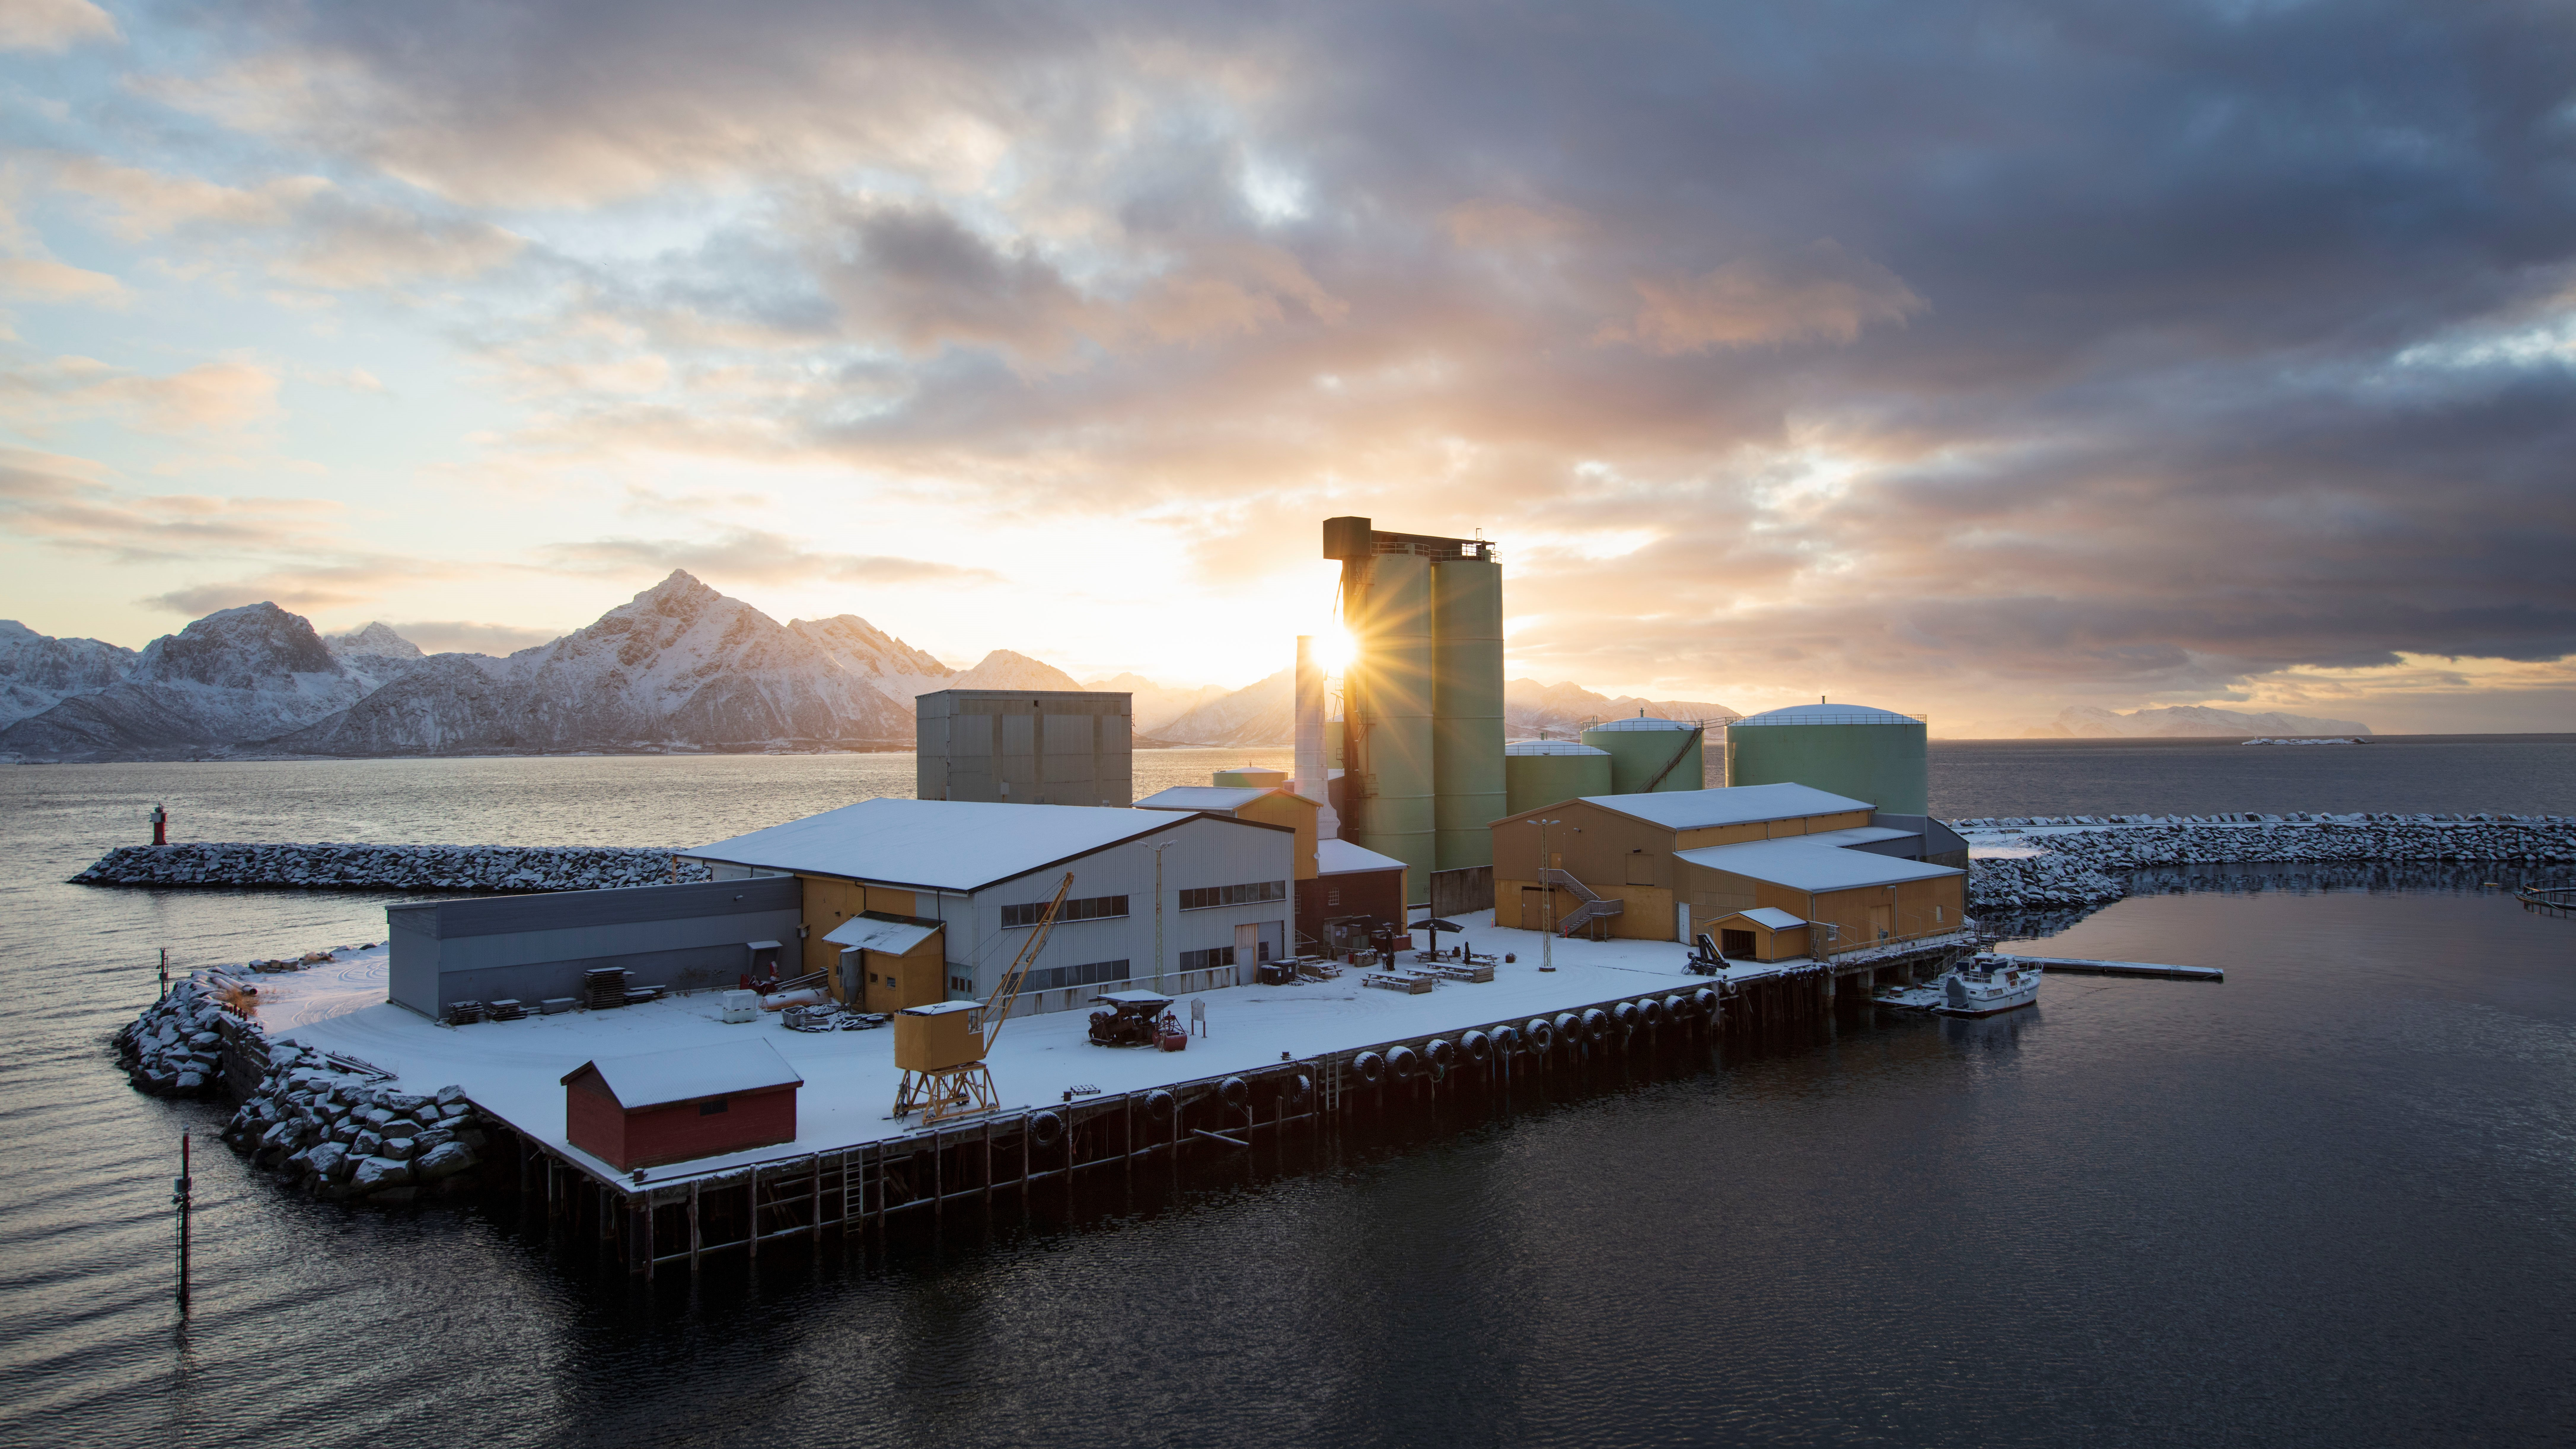 Neptune Herring Oil Factory was established in 1910 and is located on Svinøya in Hadsel Municipality, Nordland County. Photo: Trond A. Isaksen, Directorate for Cultural Heritage